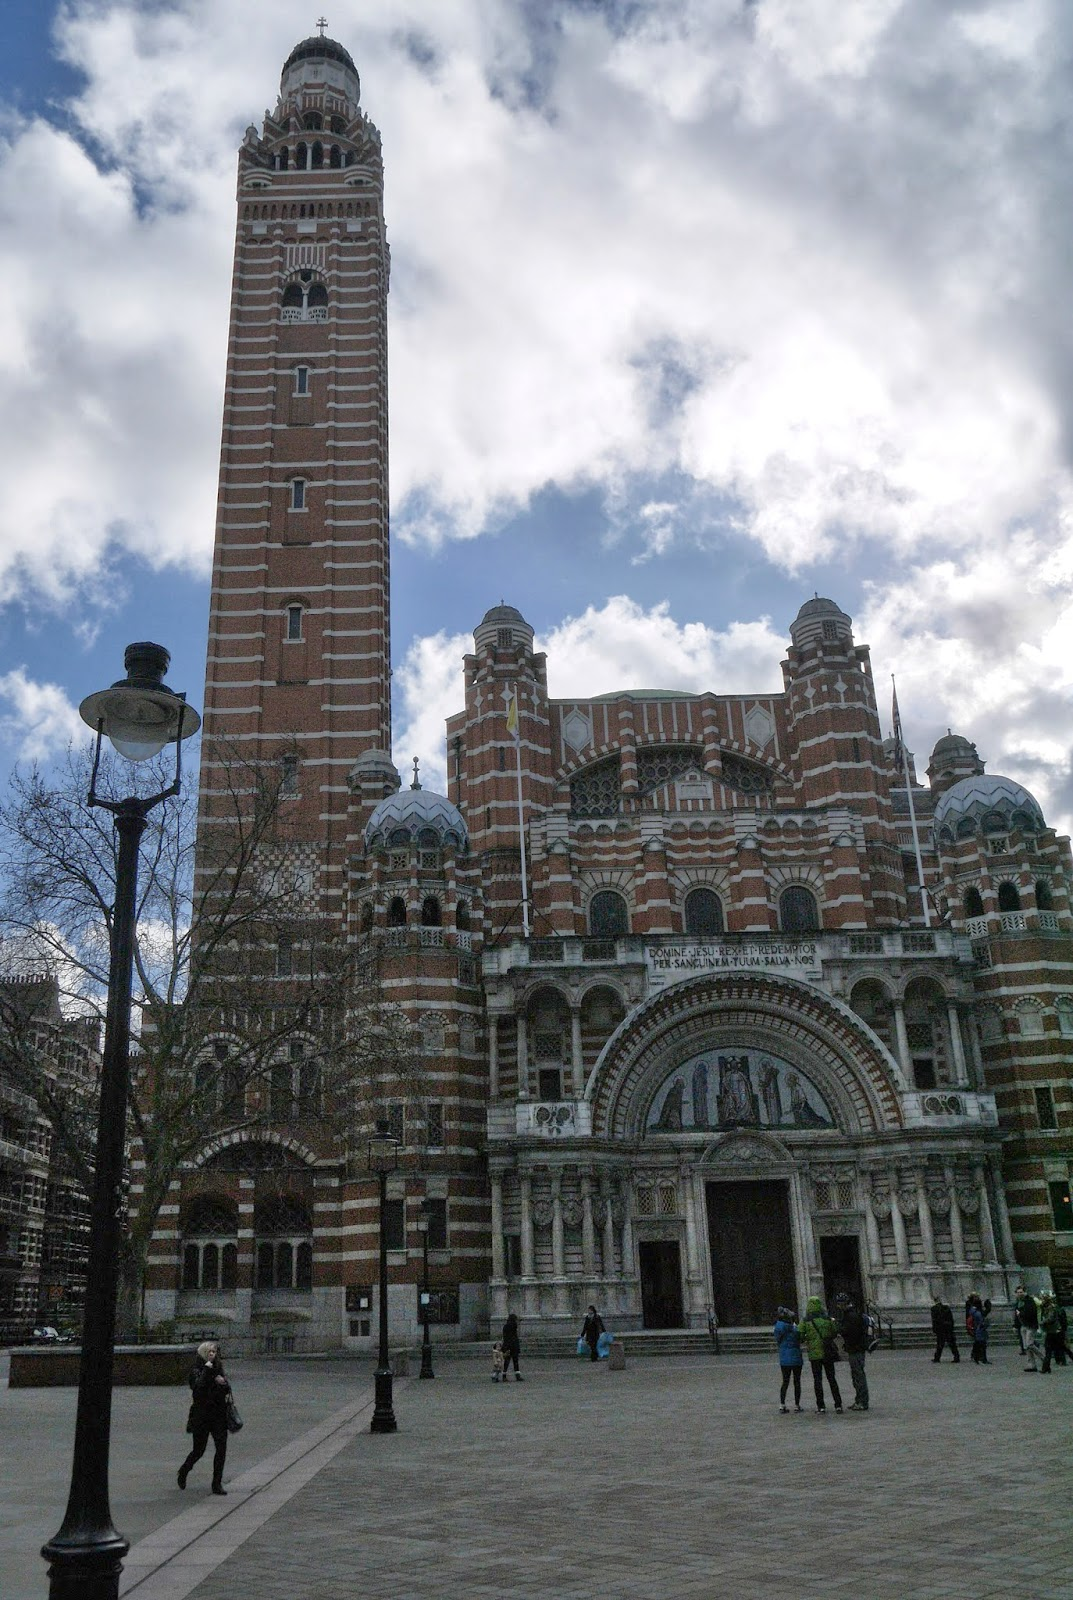 Thankful that I was able to visit Westminster Cathedral on my Birthday